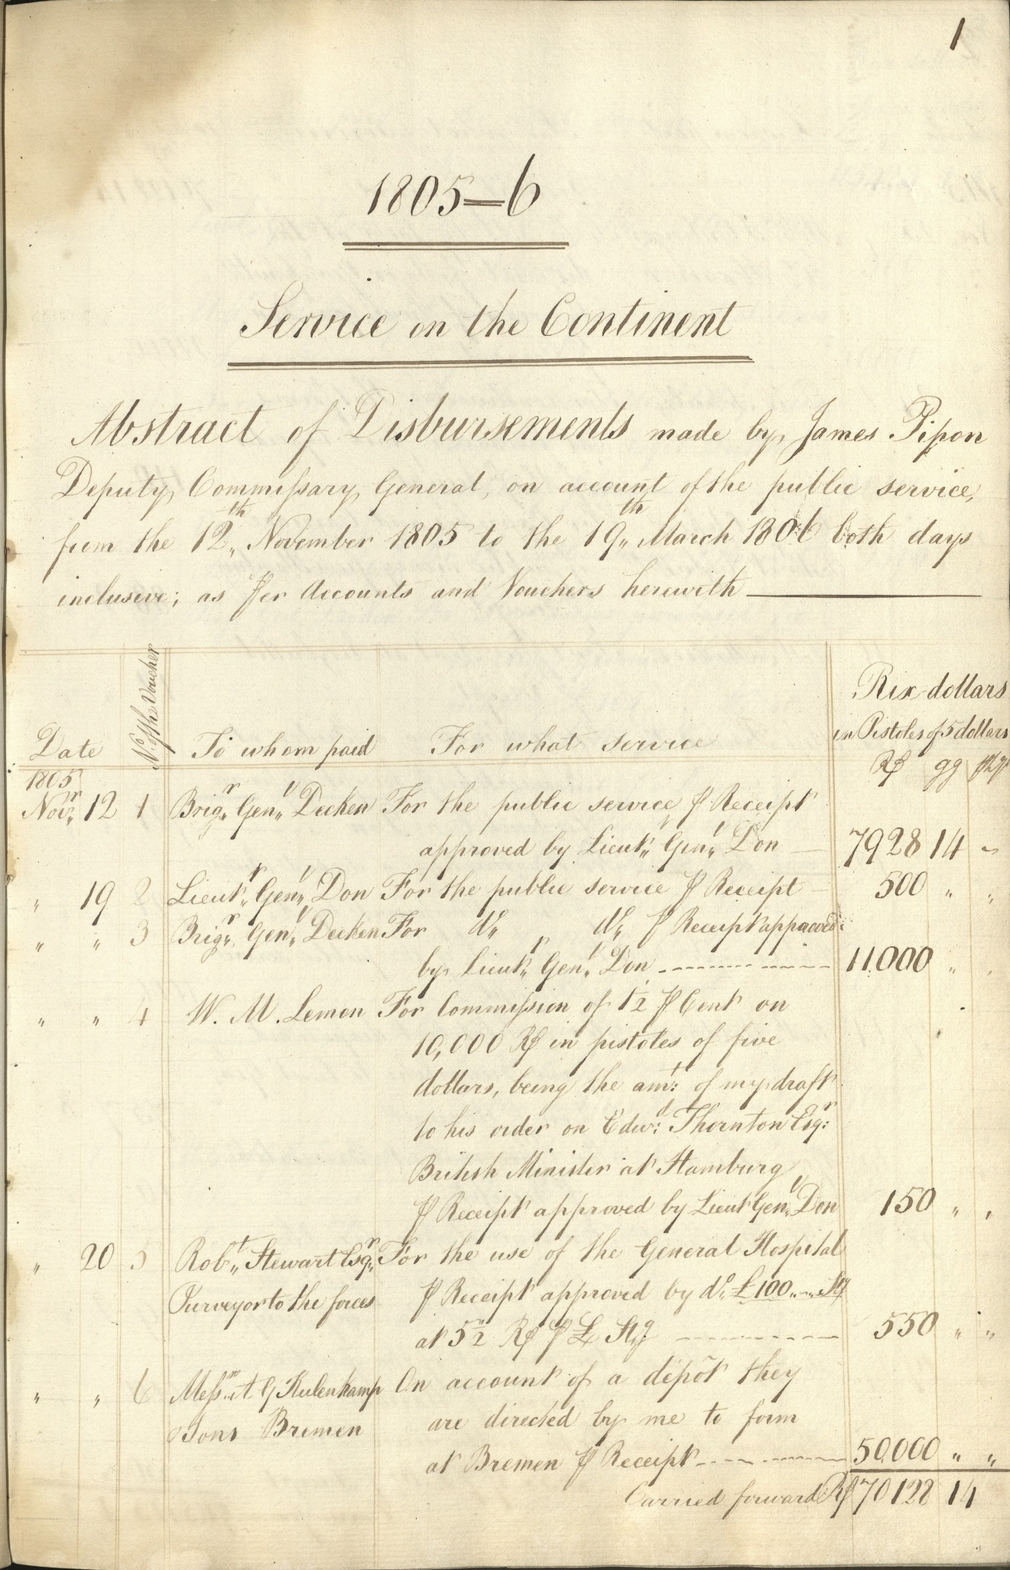 Abstract of disbursements of James Pipon, Deputy Commissary General, during his service on the continent 1805-1806, GEO/ADD/35/46